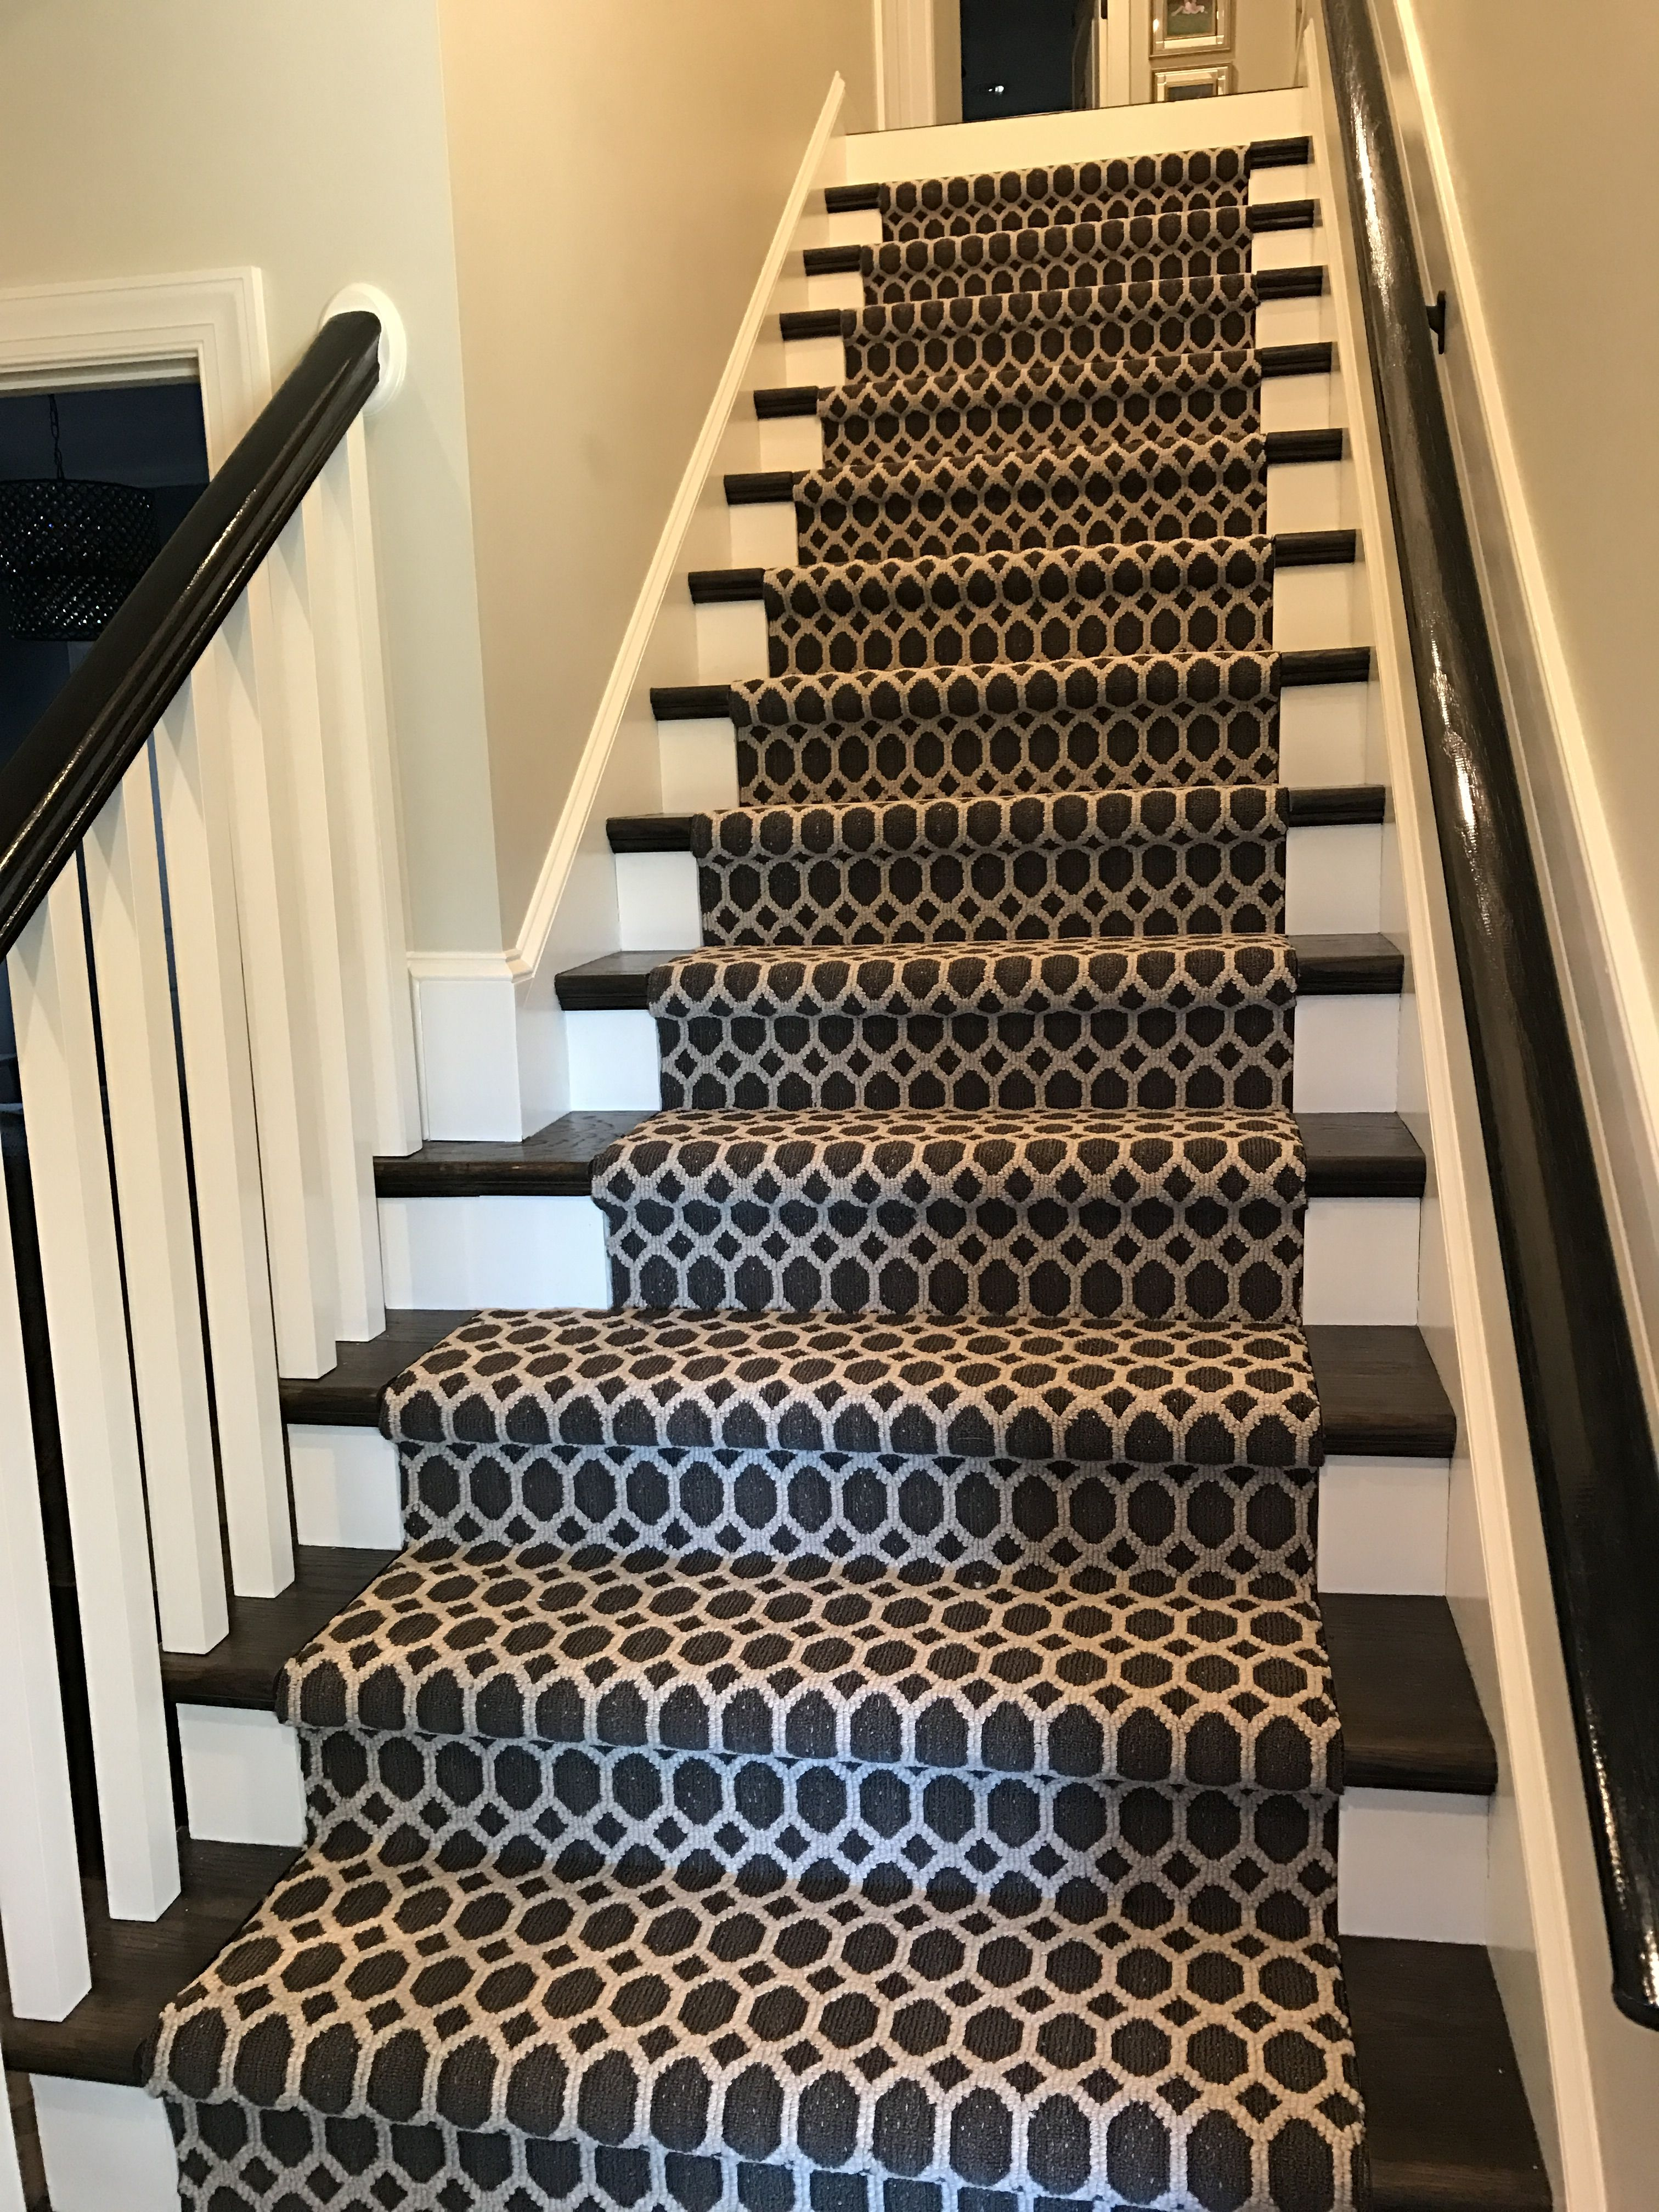 Stair Runner Charcoal Gray Geometric Shape Stairway Carpet | Stair Runners For Carpeted Stairs | Round Corner | Marble | Hardwood | Commercial | Tile Stair